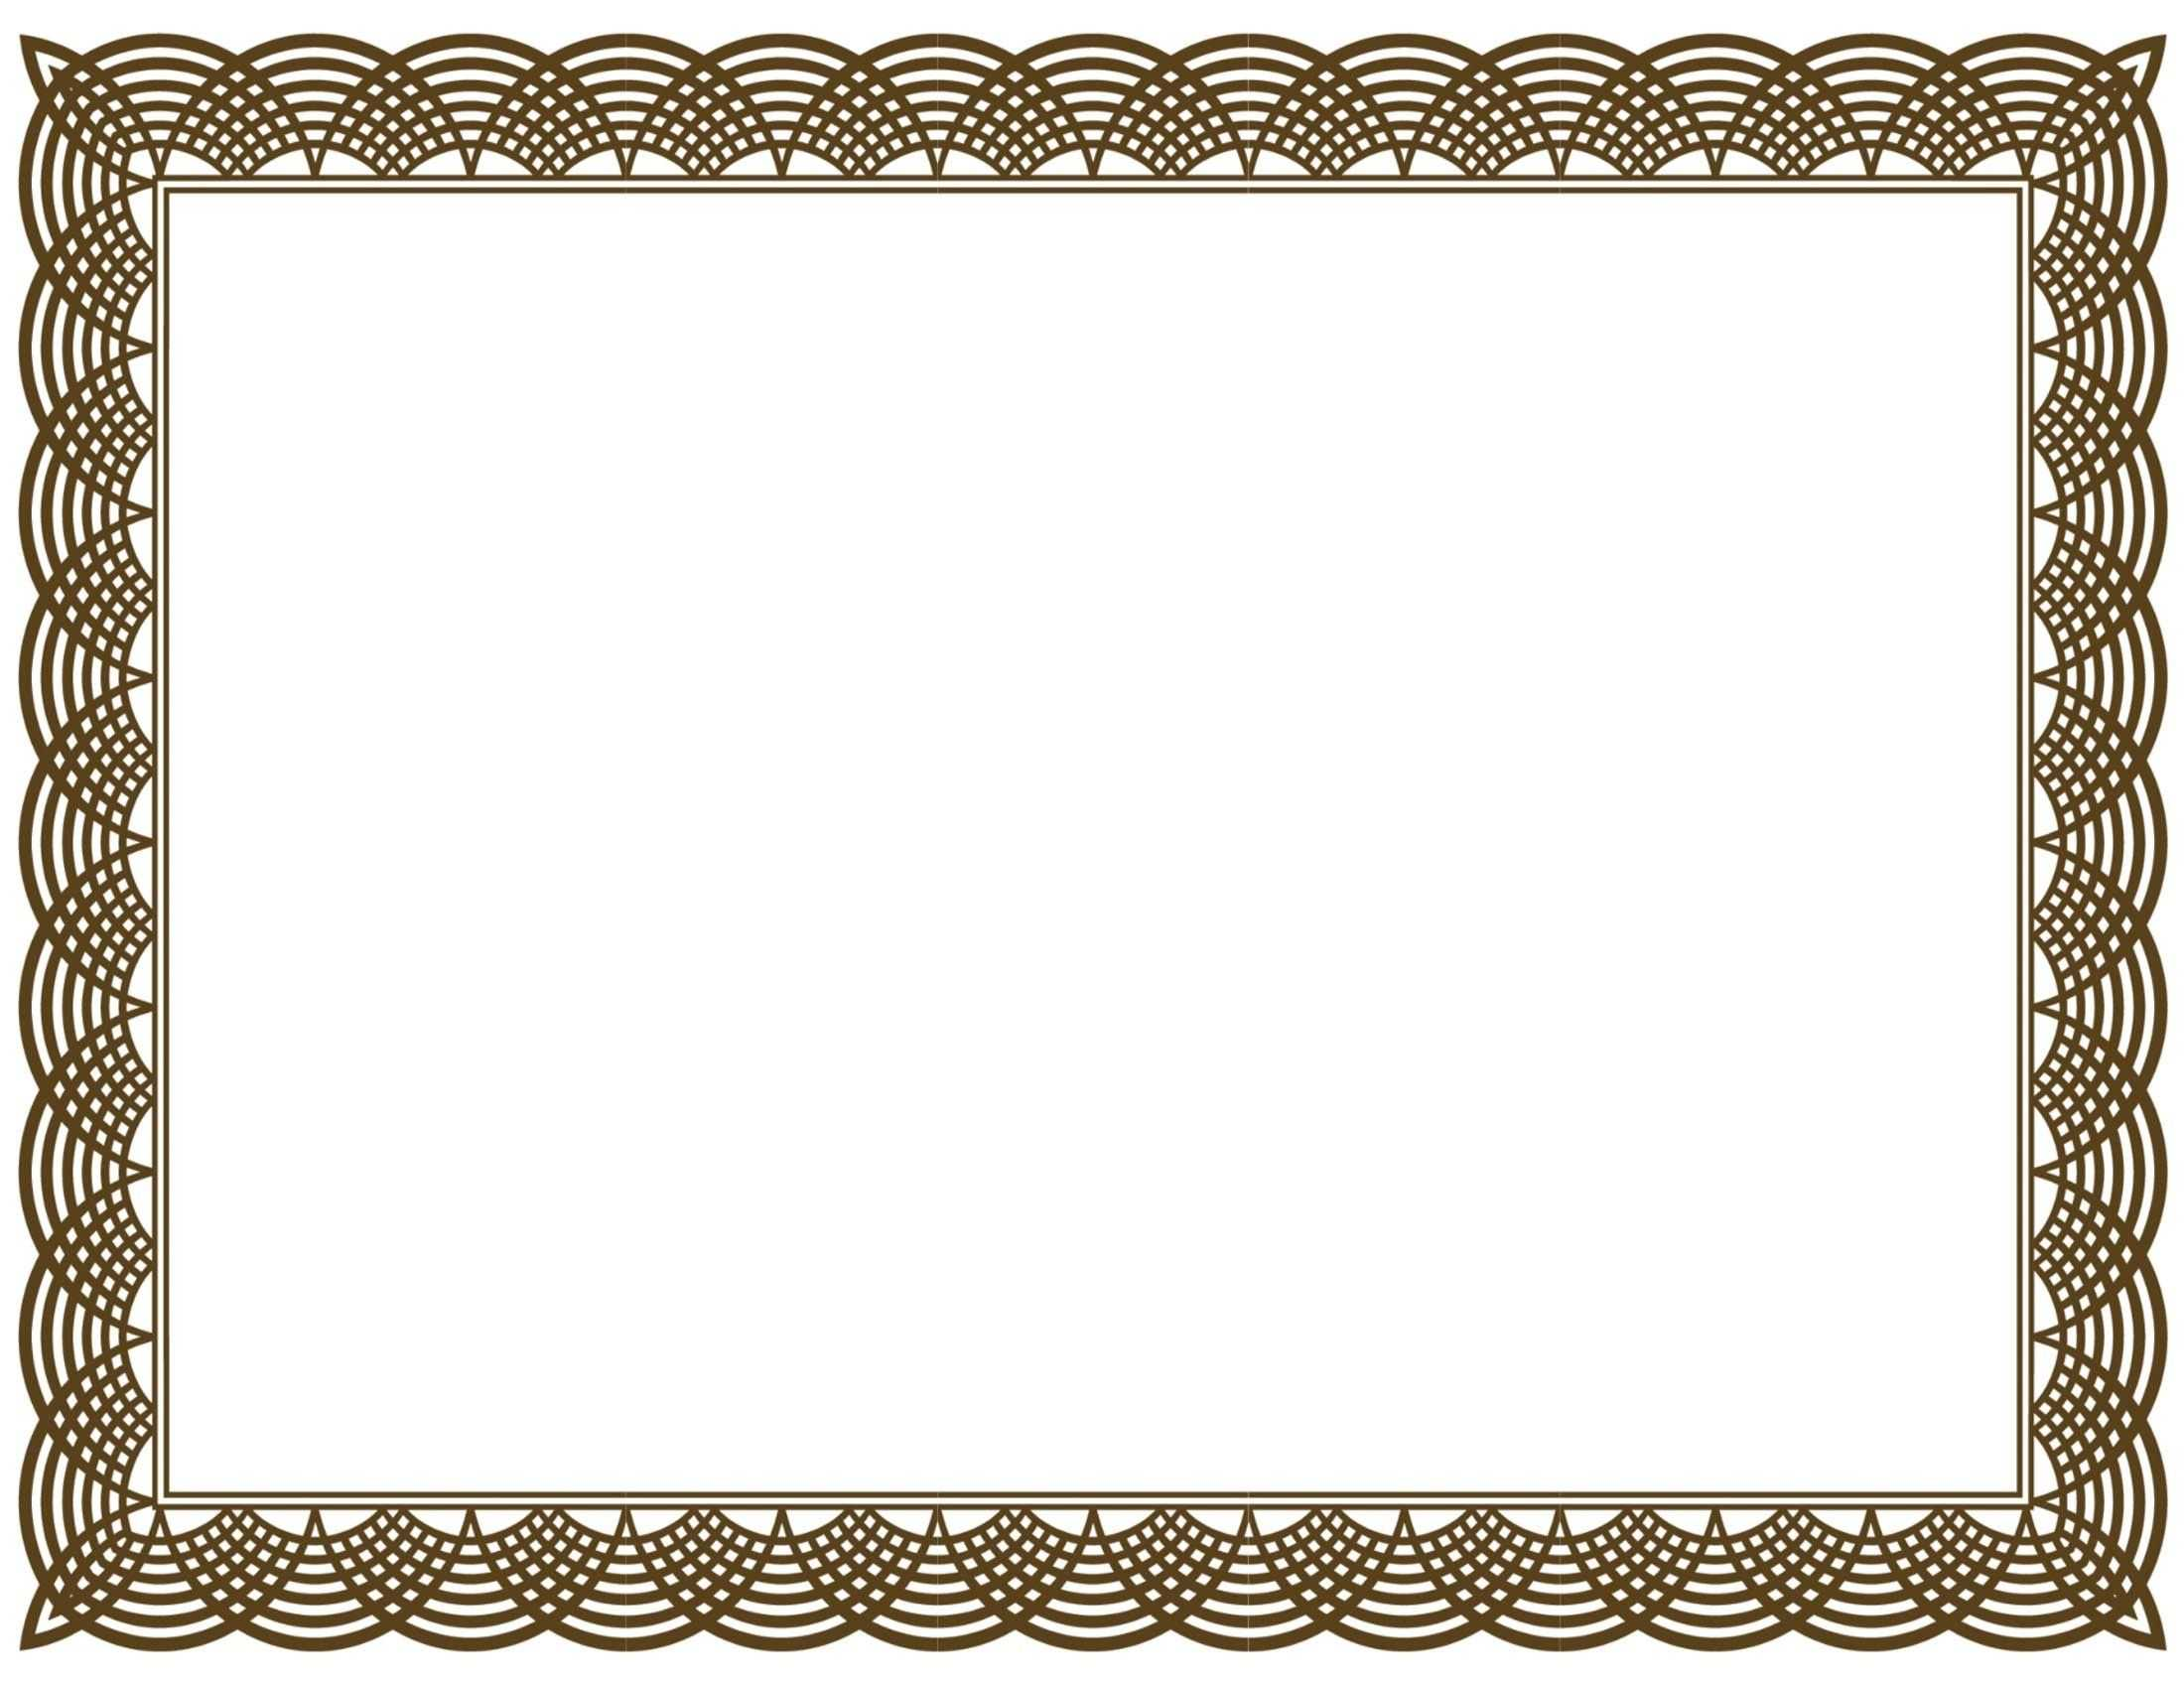 Award Certificate Border Pdf Template In Certificate Border Regarding Free Printable Certificate Border Templates